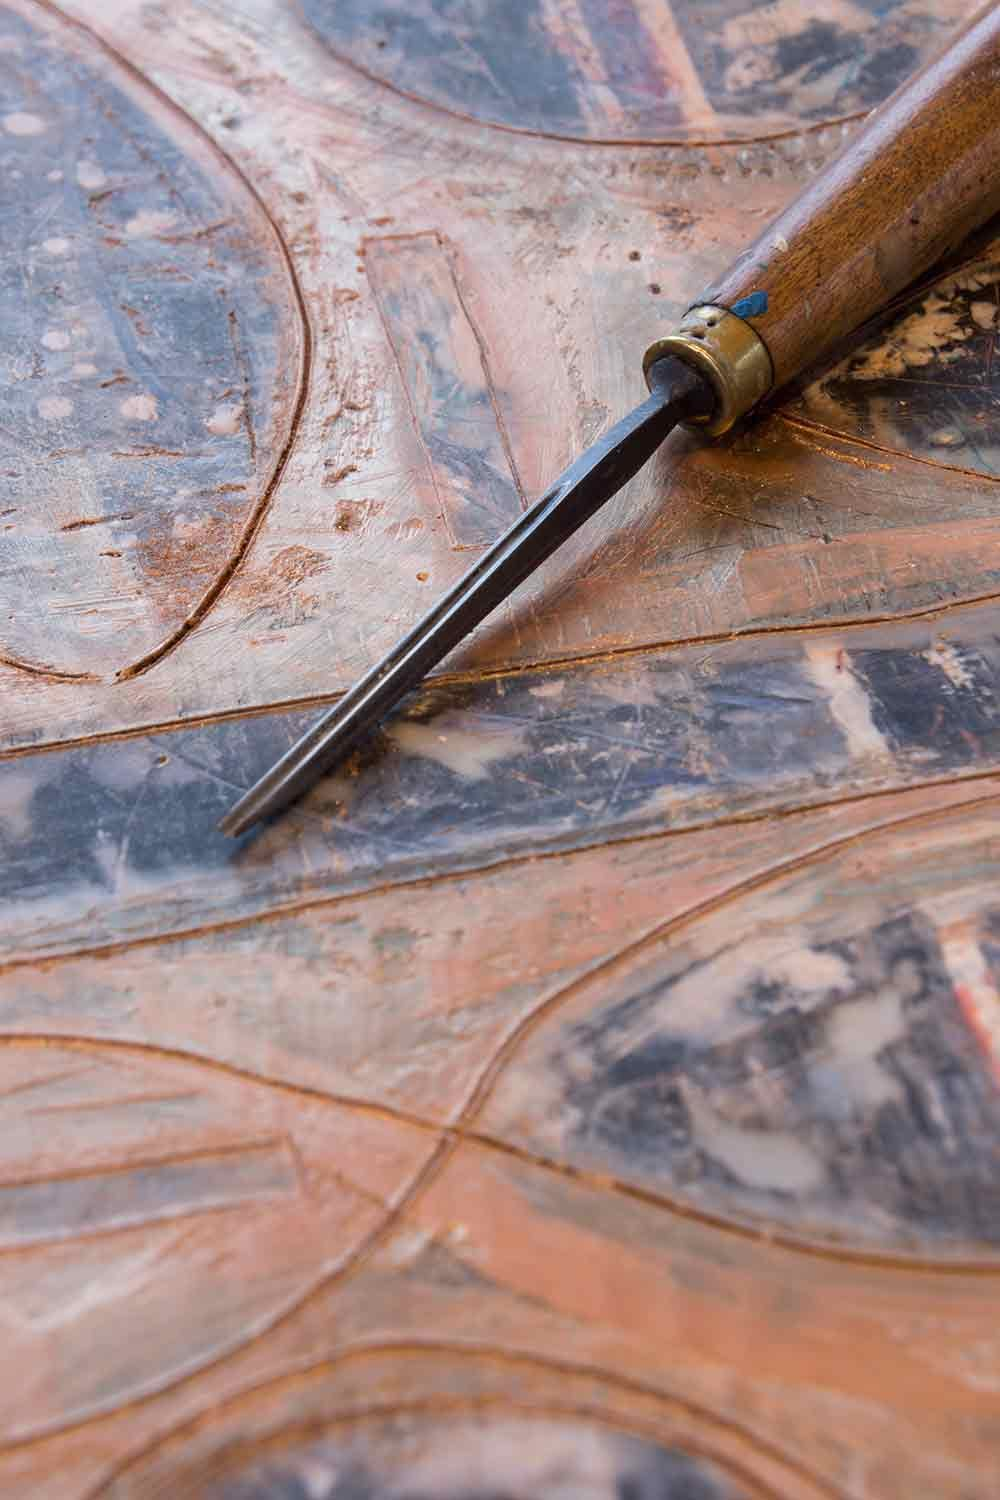 copper-painting-with-carving-tool-op.jpg